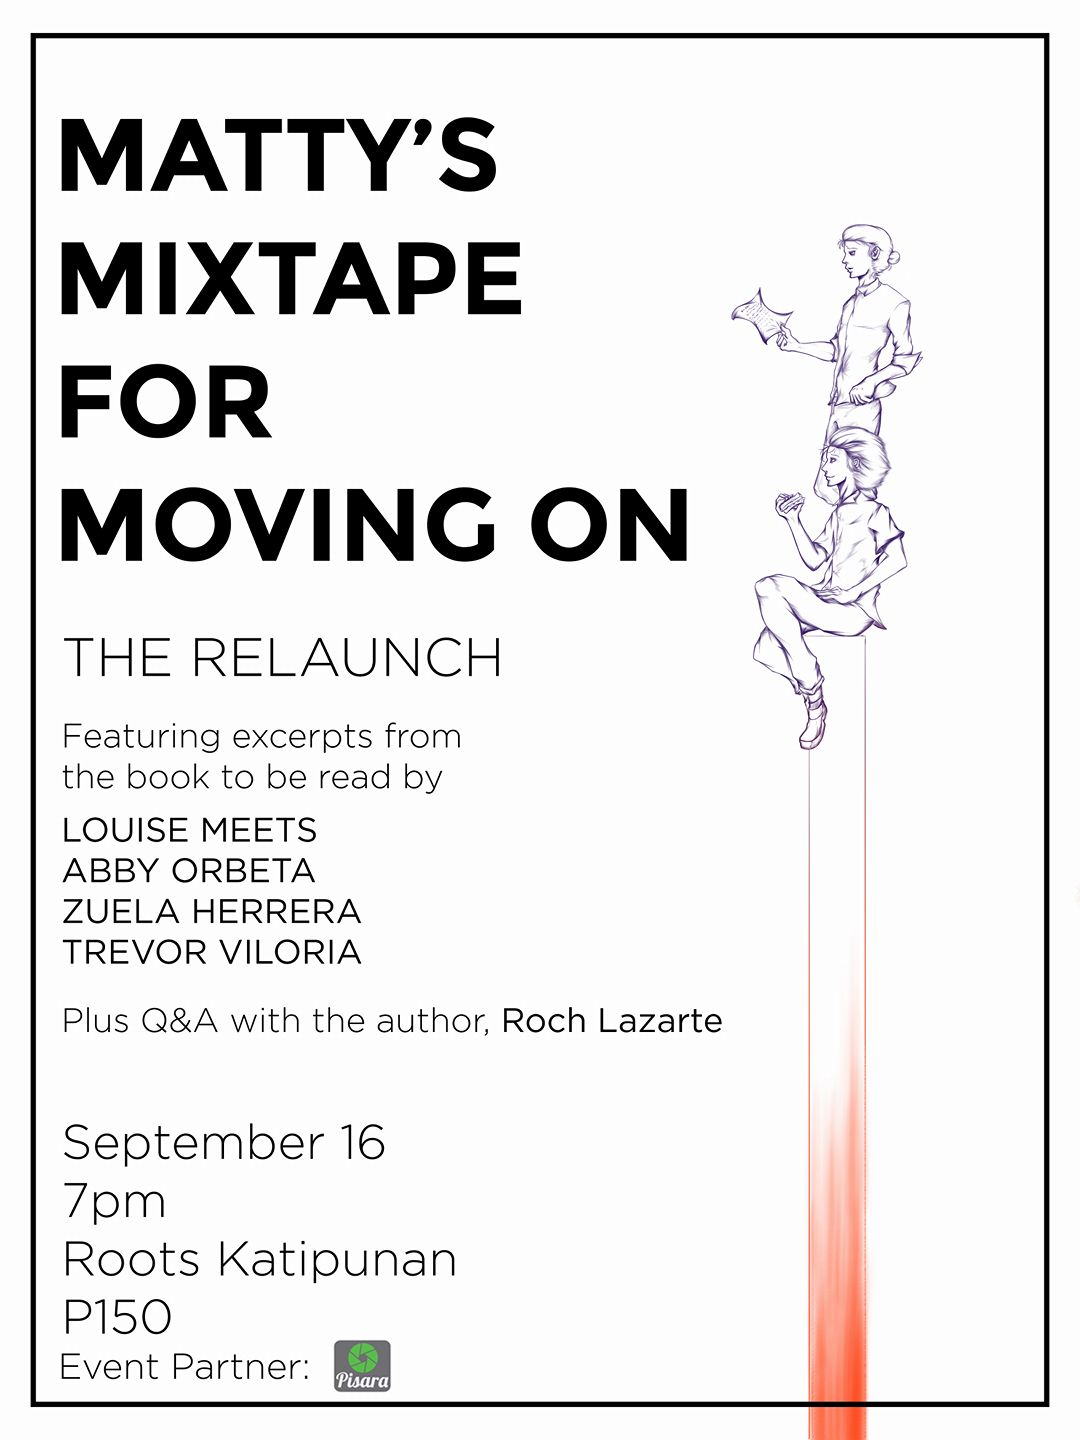 Matty's Mixtape for Moving On: The Relaunch Public · Hosted by Roch Lazarte GoingShare clock Saturday, September 16 at 7 PM - 11 PM pin Show Map Roots Katipunan (Quezon City, Philippines) Unit 106, 307 Katipunan Avenue, FBR Arcade Building, 1108 Quezon City, Philippines About Discussion 24 Going · 224 InterestedSee All Gerardine is going Share Details Matty's Mixtape for Moving On is getting a brand new cover, bonus content, and some merch! please join me and my friends celebrate the anniversary of my book on my birth month! i promise it'll be fun hehehe. see you! ❤ poster done by one of my goodest friends, Nicolai Maverick! --- Roch LazarteMatty's Mixtape for Moving On: The Relaunch Follow · August 15 · Matty's Mixtape for Moving On is getting a brand new cover, bonus content, and some merch! please join me and my friends celebrate the anniversary of my book on my birth month! i promise it'll be fun hehehe. see you! ❤ poster done by one of my goodest friends, Nicolai Maverick! thank you to Pisara Media for being our event partner!